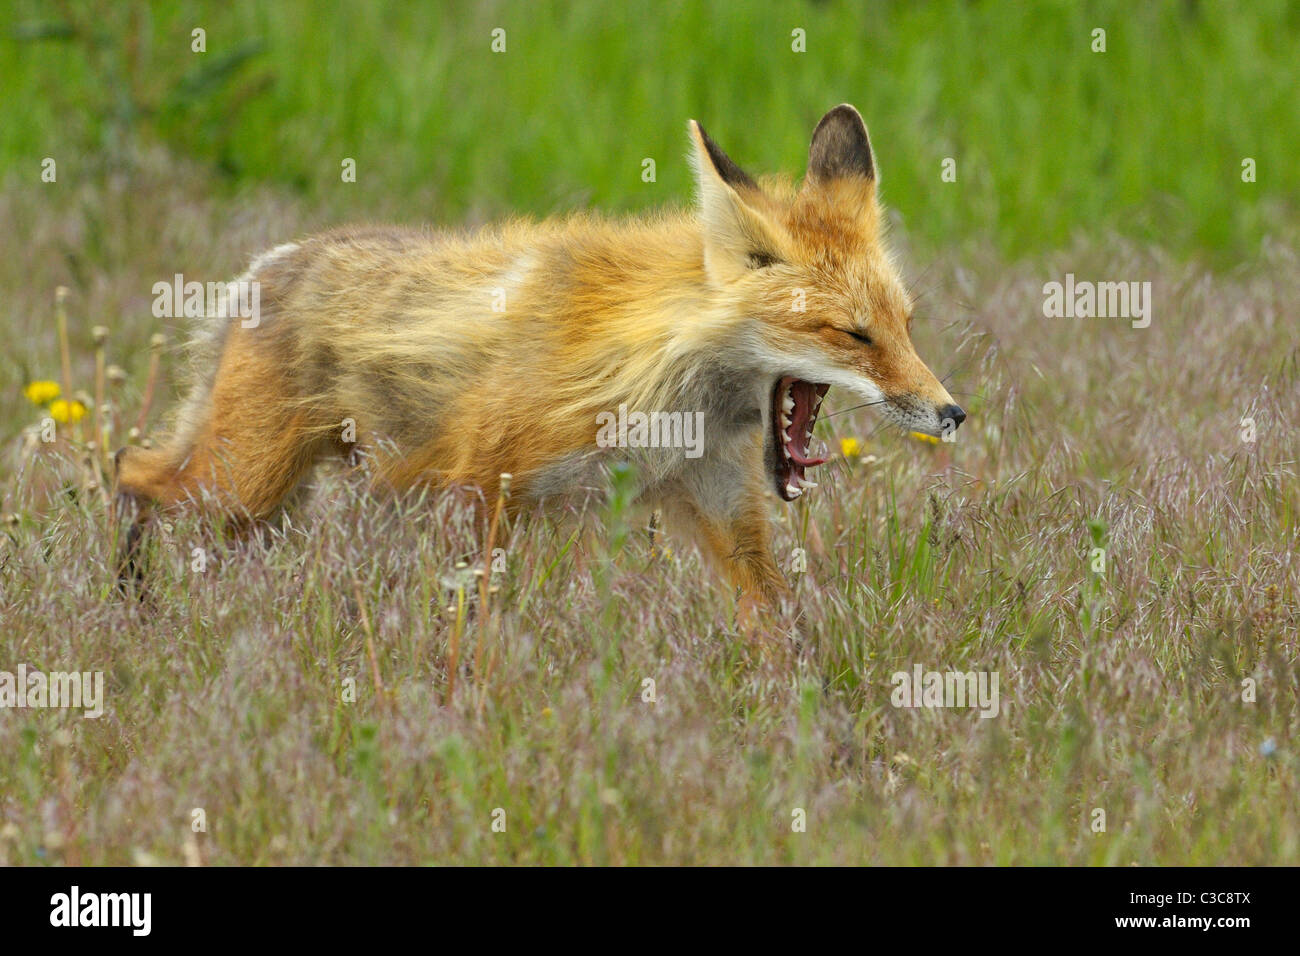 Yawning and stalking red fox - Stock Image